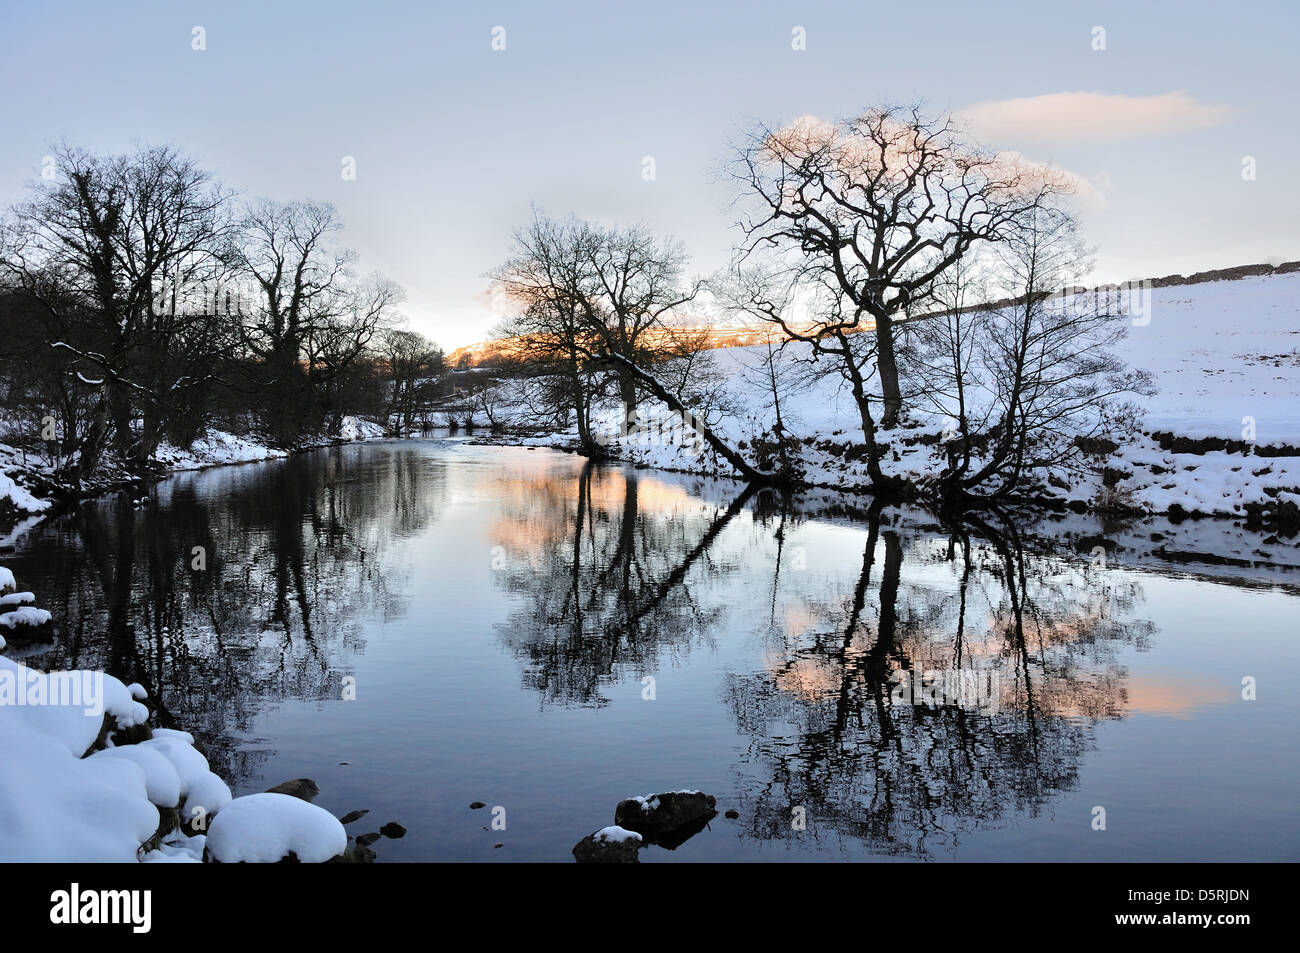 Evening River Wharfe near Hebden North Yorkshire England, in snow. reflections in the river. Stock Photo